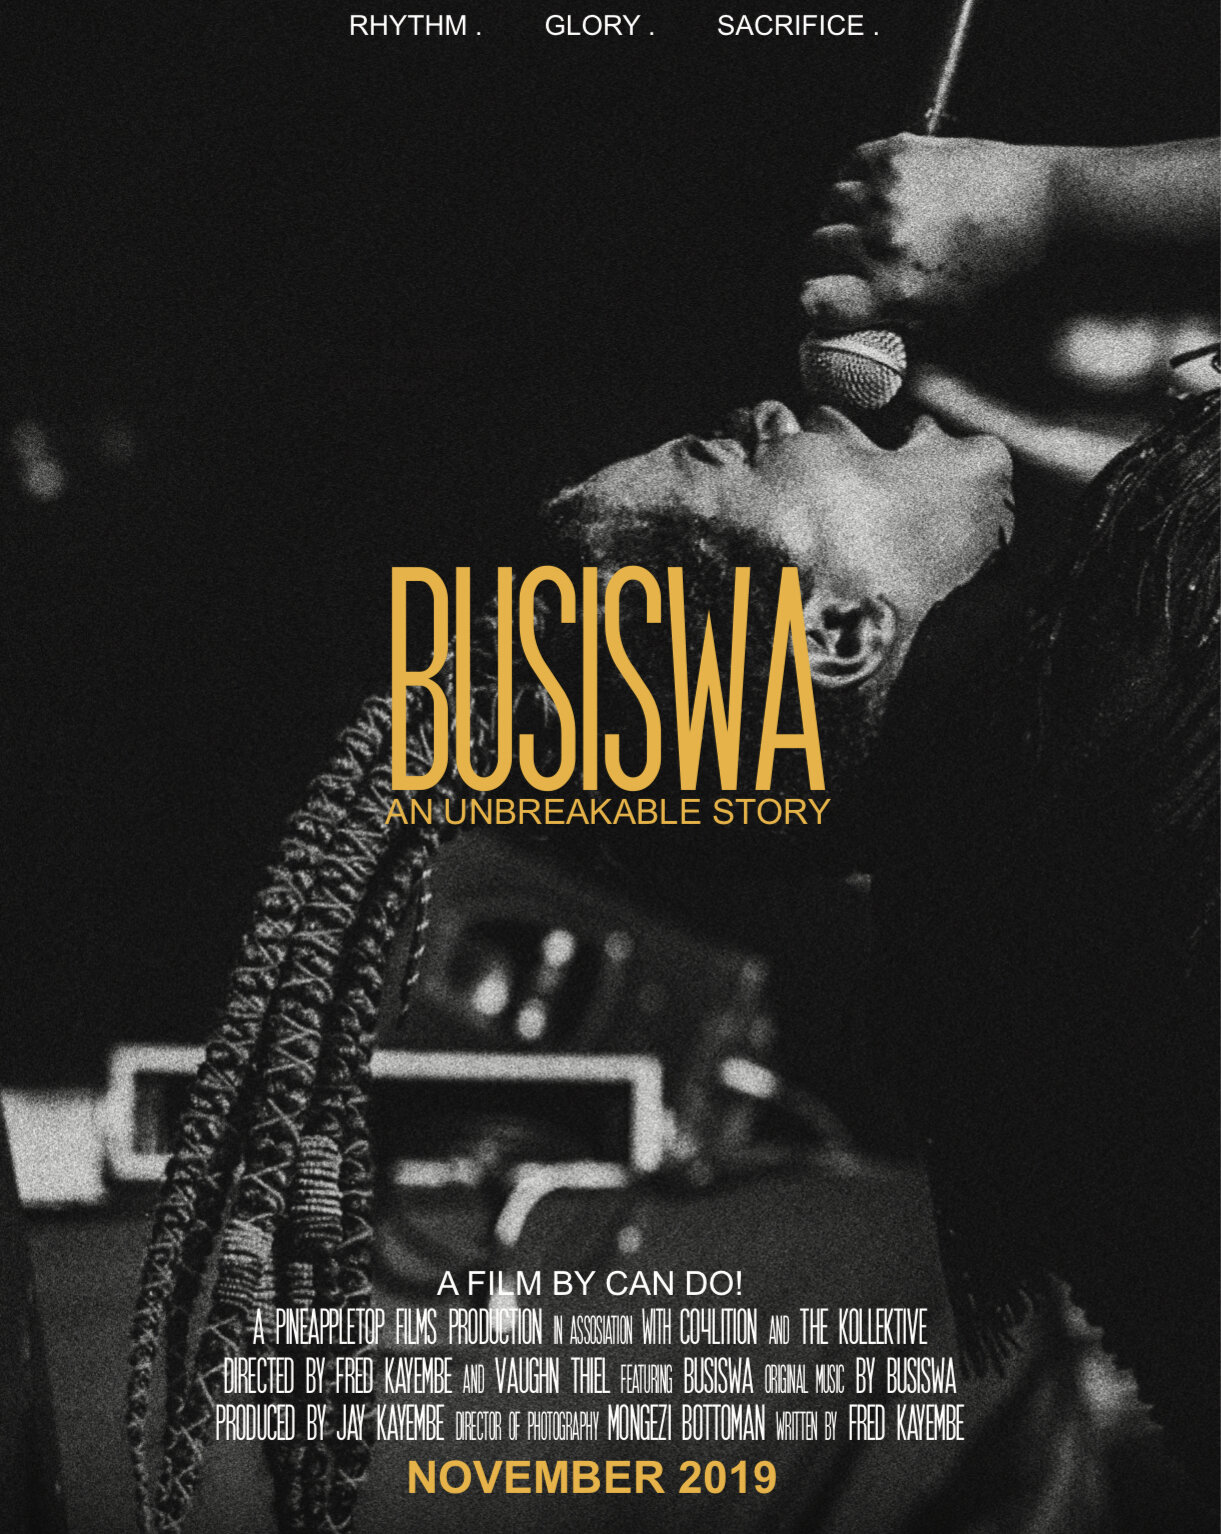 Busiswa: An Unbreakable Story - Opening Night Premiere2019 DocumentaryShe's the Dance Queen of South Africa's music scene and Award winning vocalist. But where did it all start and how has she got this far follow her Journey. From her early beginnings in Mthatha, Eastern Cape, to her gaining public recognition in a feature on DJ Zinhle's song,